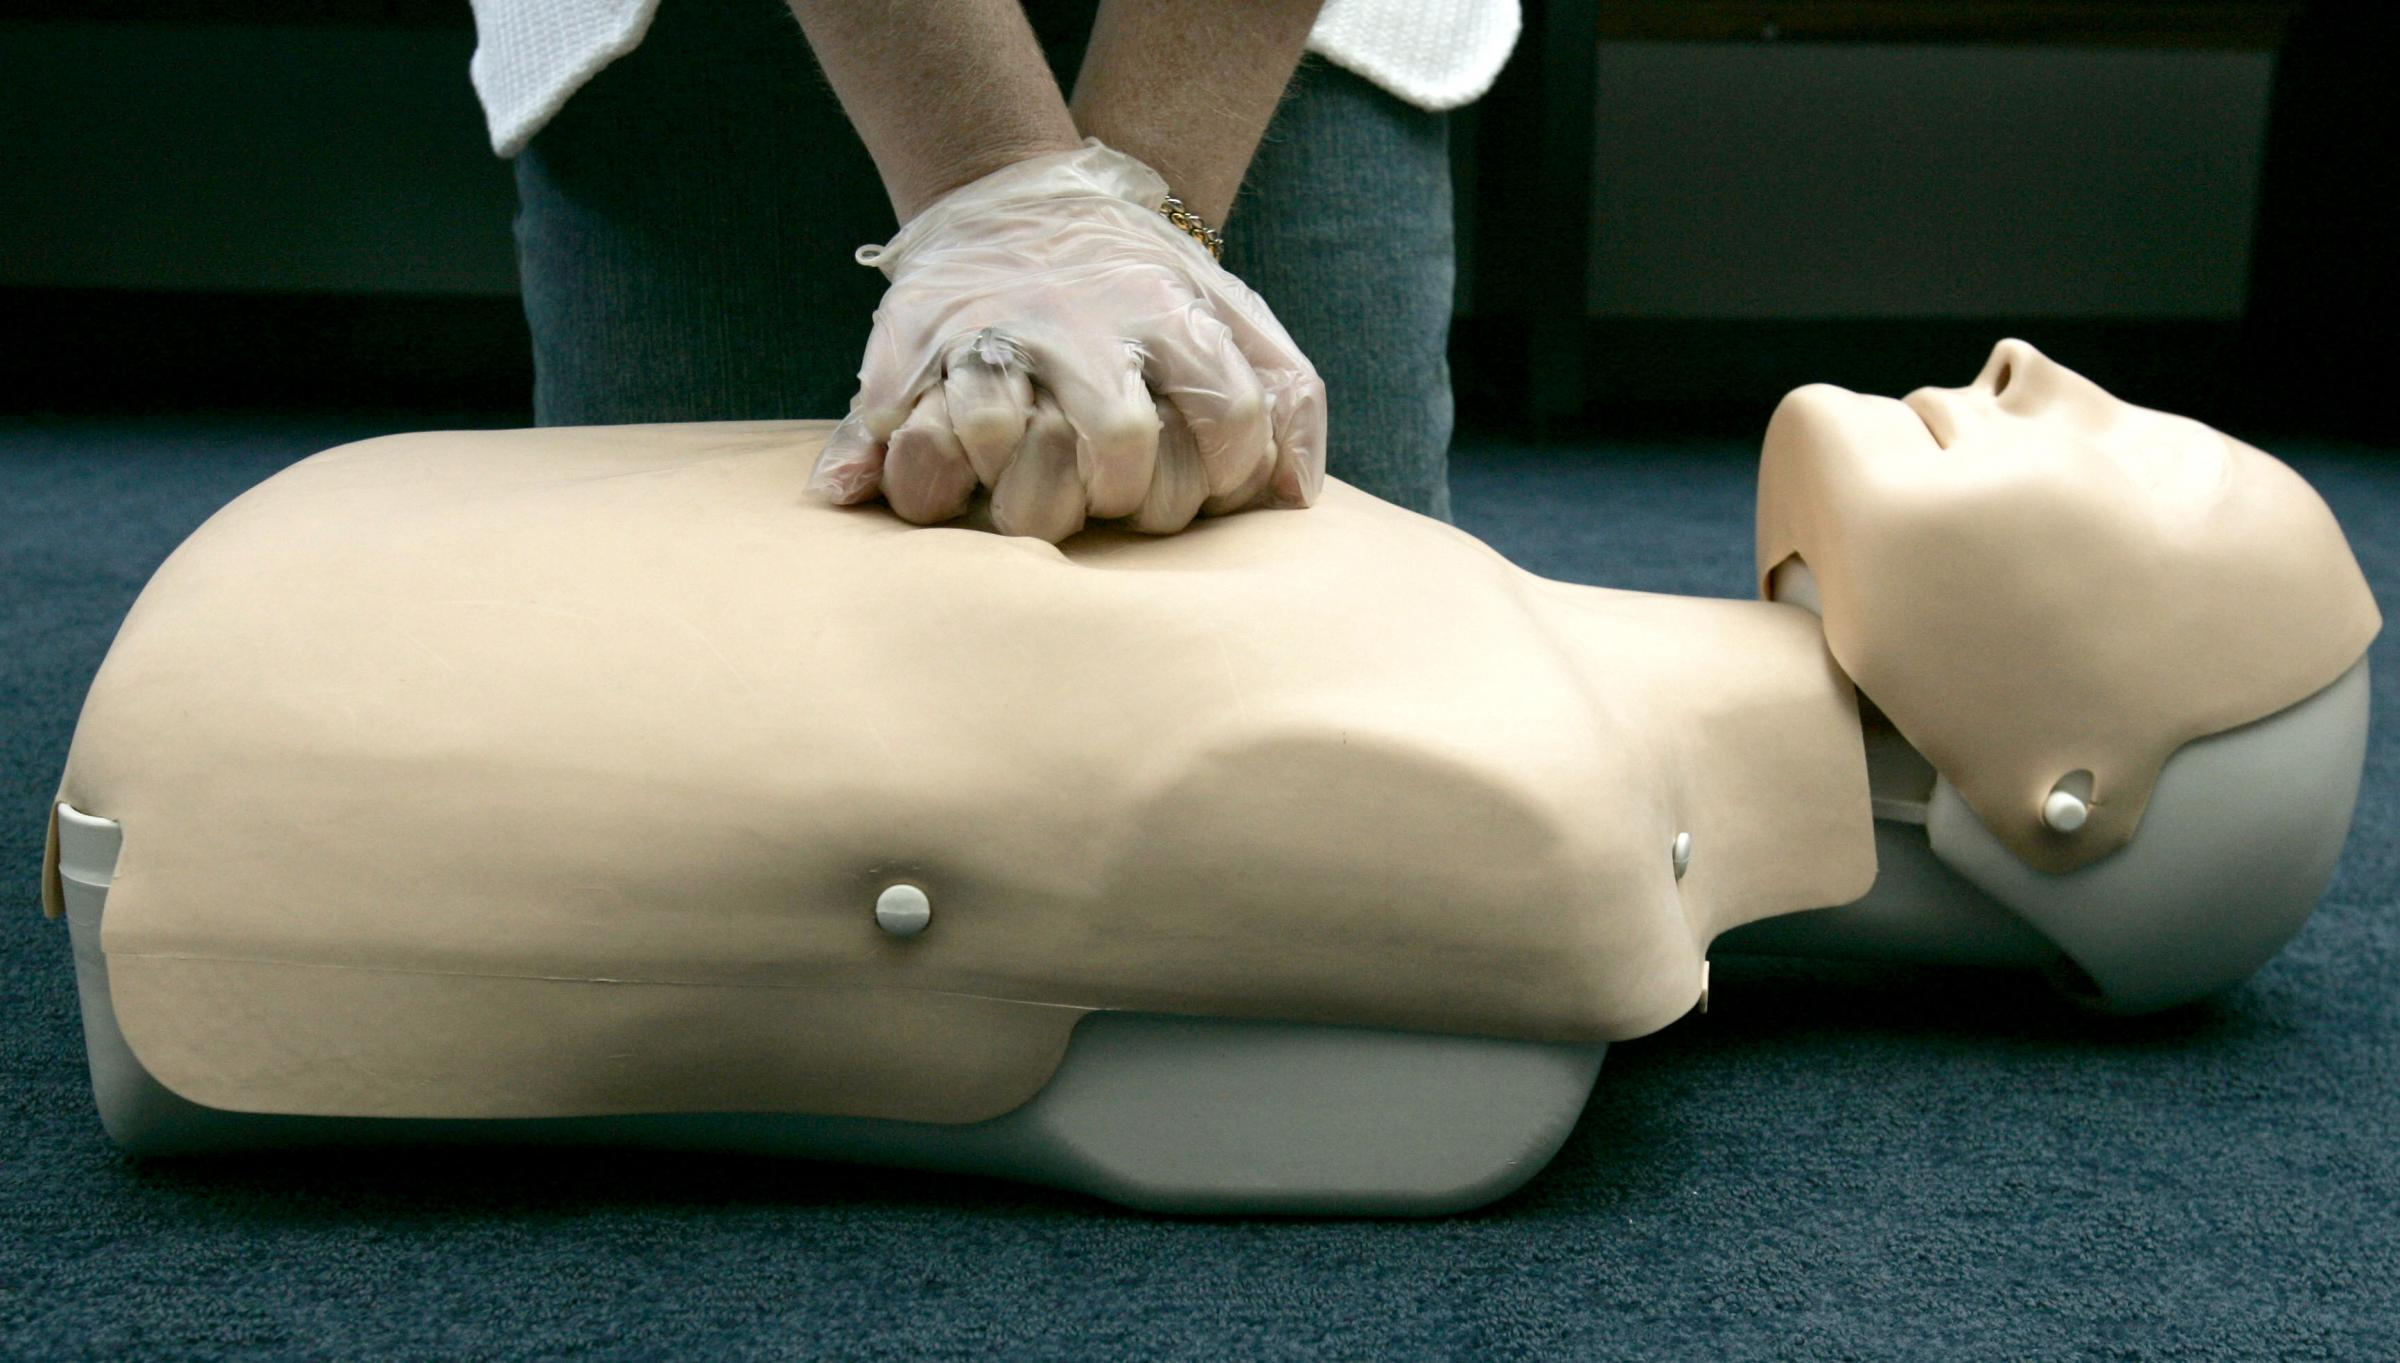 If your heart stops be in seattle but helps coming for the rest american red cross hands only cpr training using an inflatable mannequin xflitez Gallery